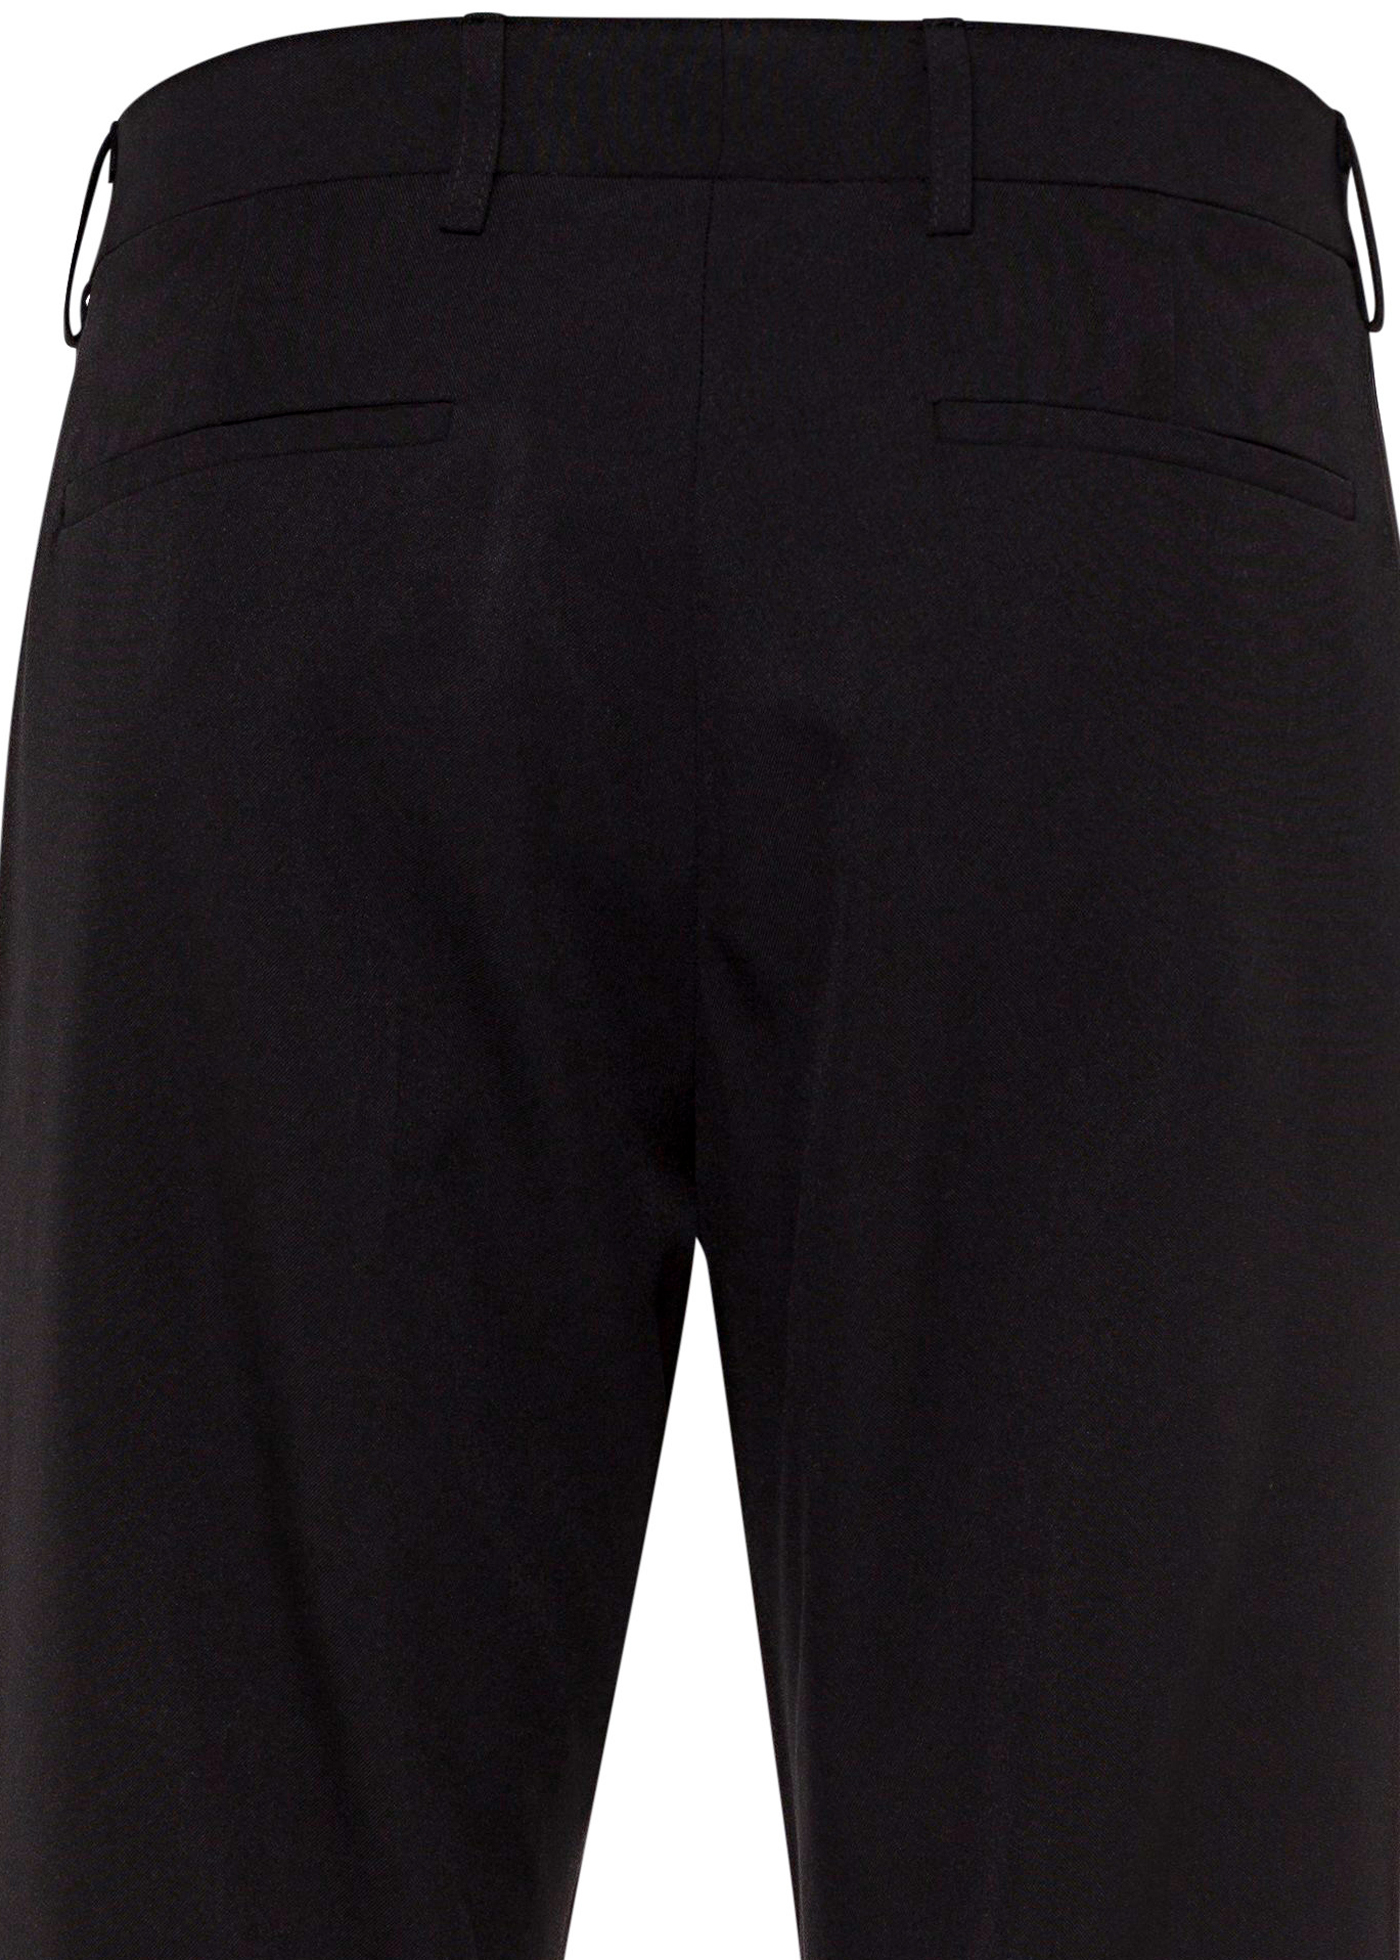 90'S NY BLACK TAILORED TROUSERS image number 3